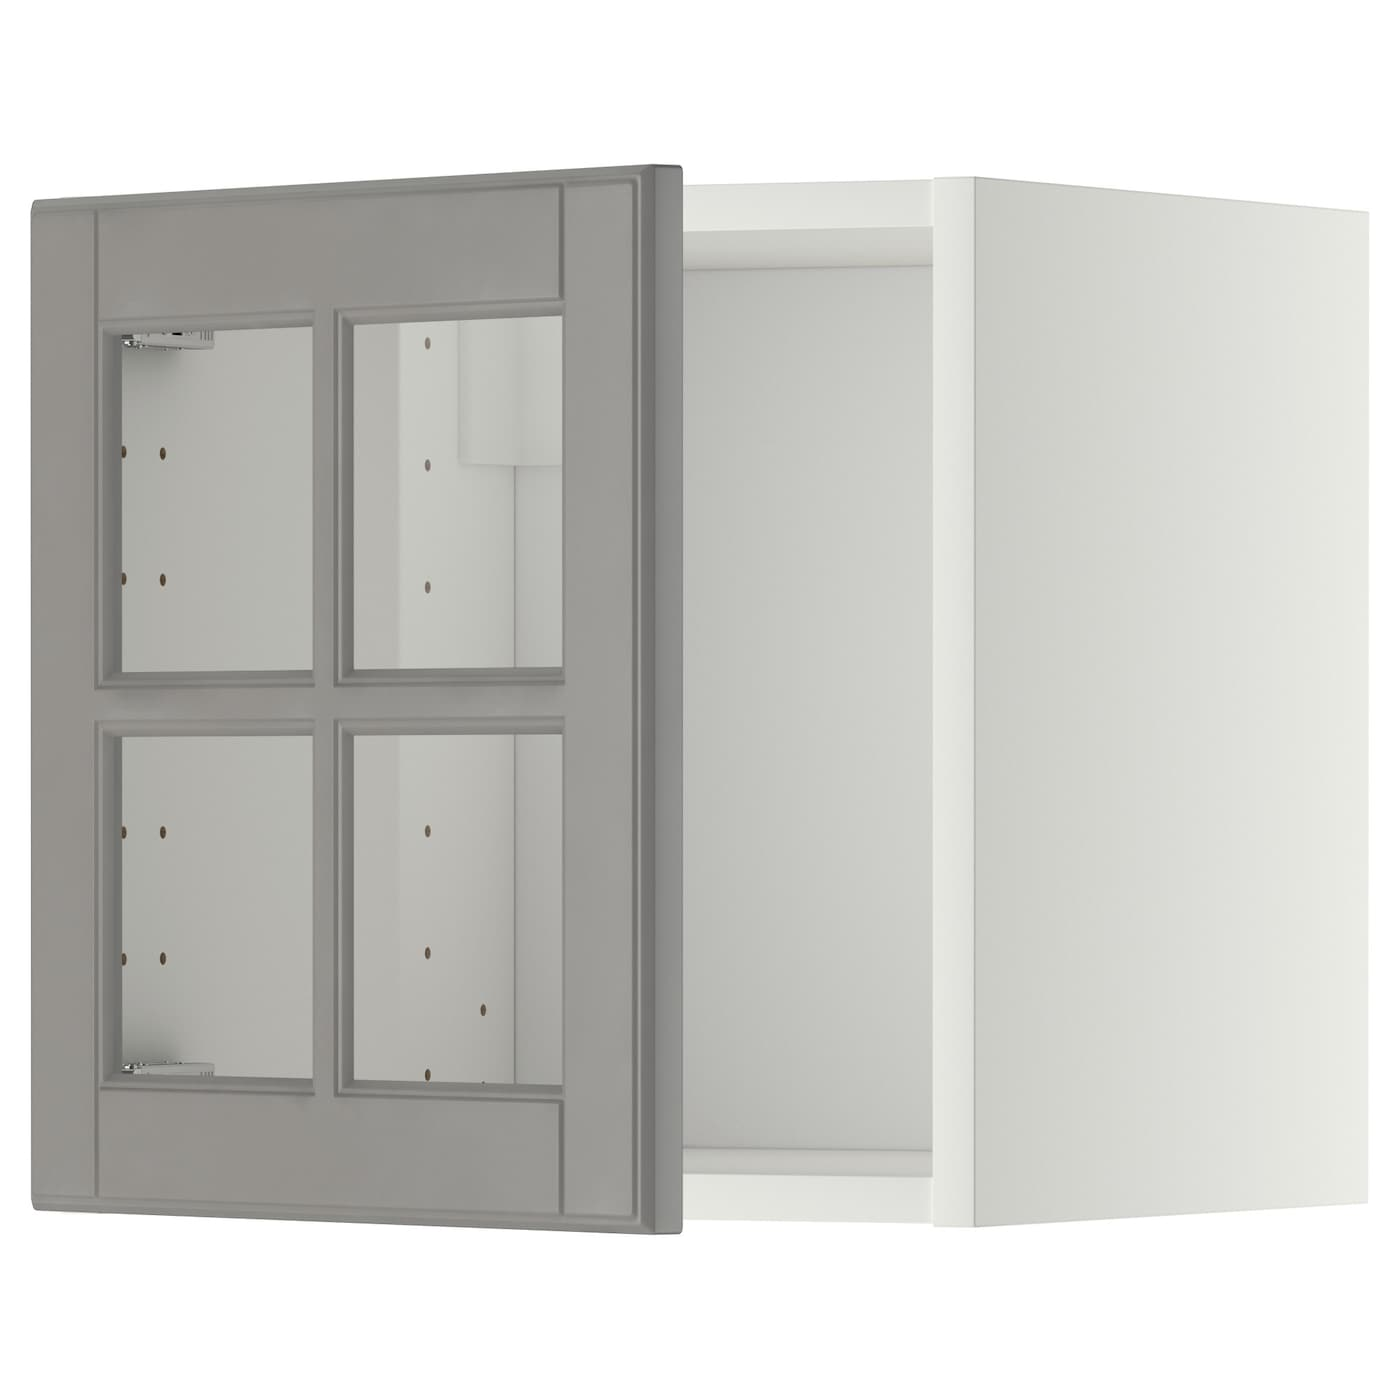 Metod wall cabinet with glass door white bodbyn grey 40x40 for Ikea glass door wall cabinet